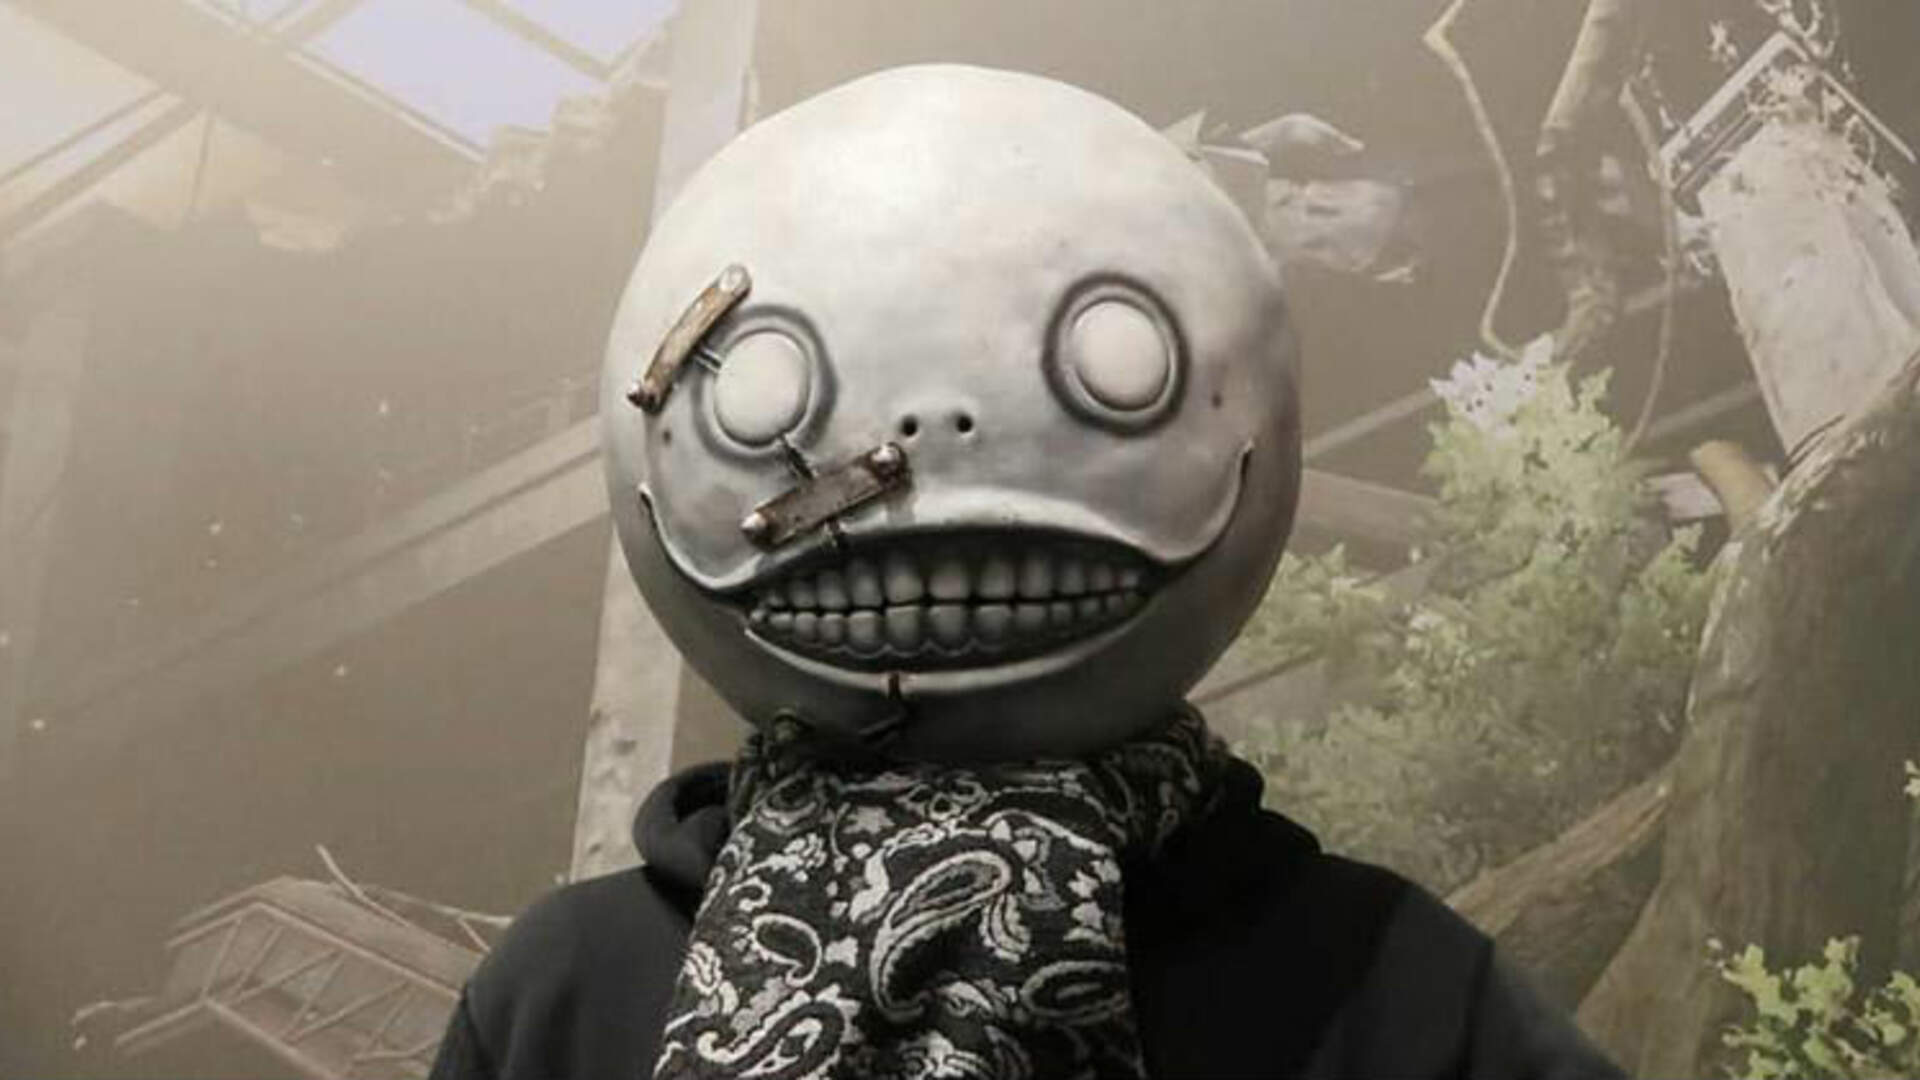 Square Enix Producer Wants Yoko Taro to Direct a Final Fantasy Game, Which I'm Sure He'd Do For the Right Price